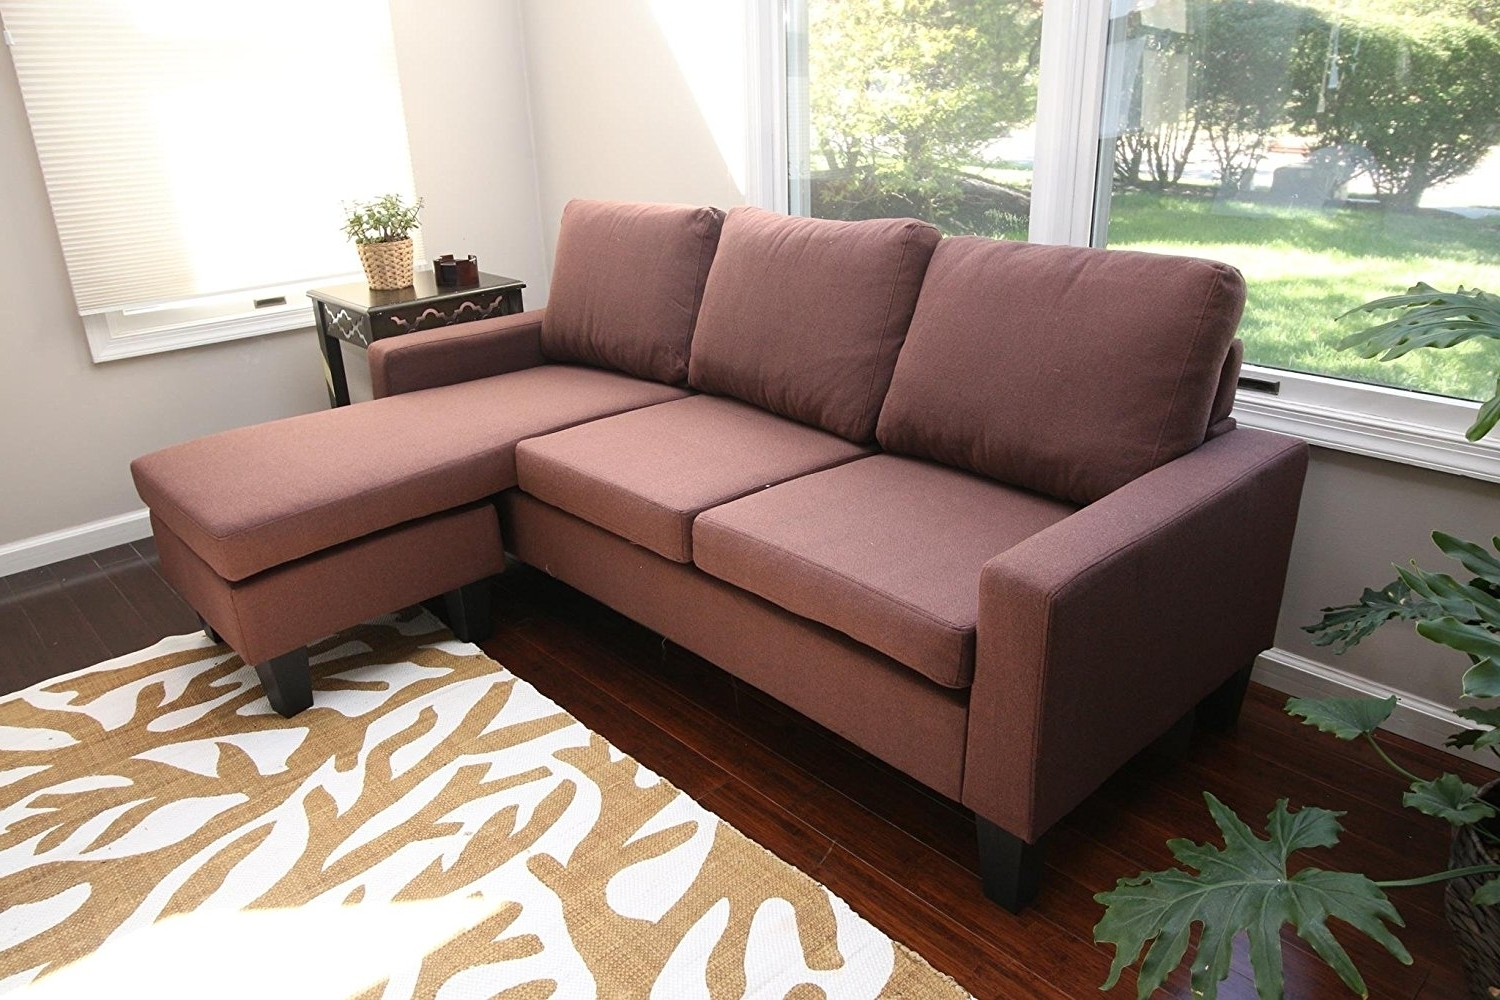 2018 Latest 80X80 Sectional Sofas Throughout 80X80 Sectional Sofas (Image 4 of 10)